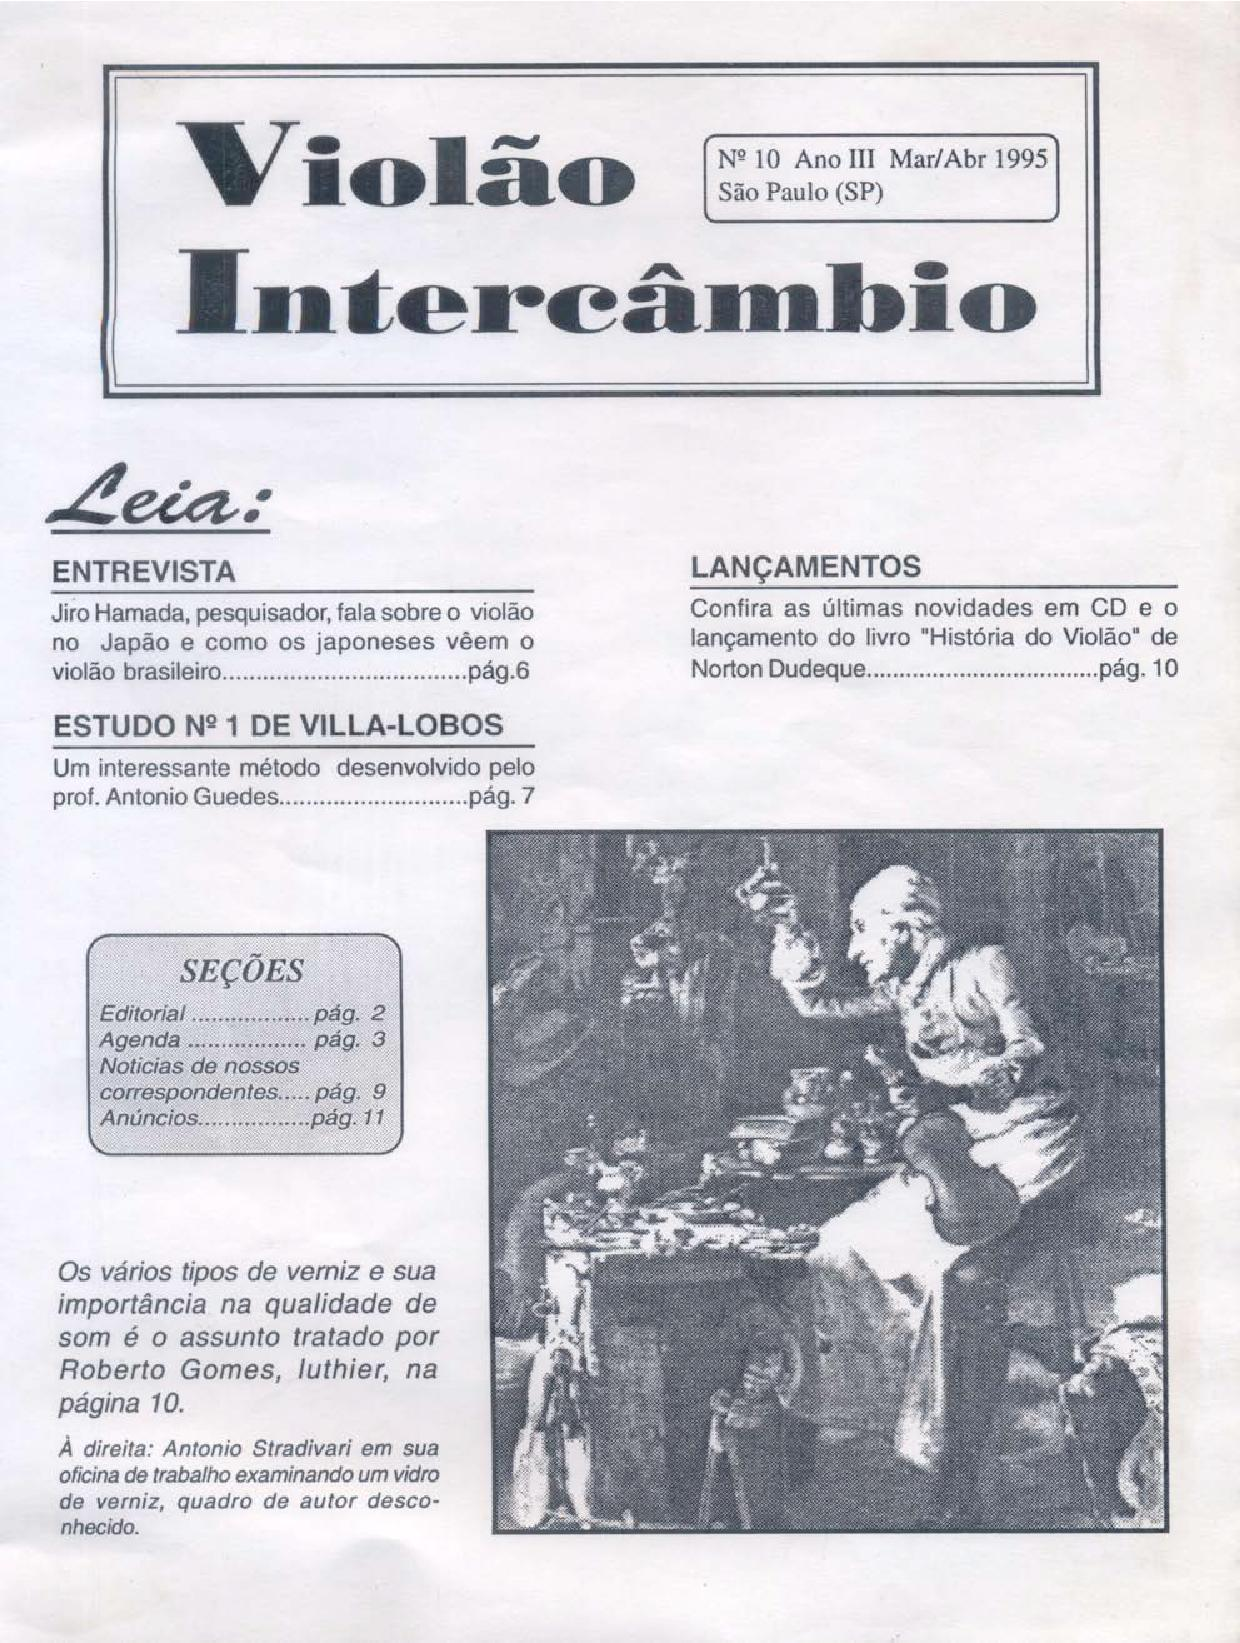 Revista Violão Intercâmbio - n 10 ano III - mar/abr 1995